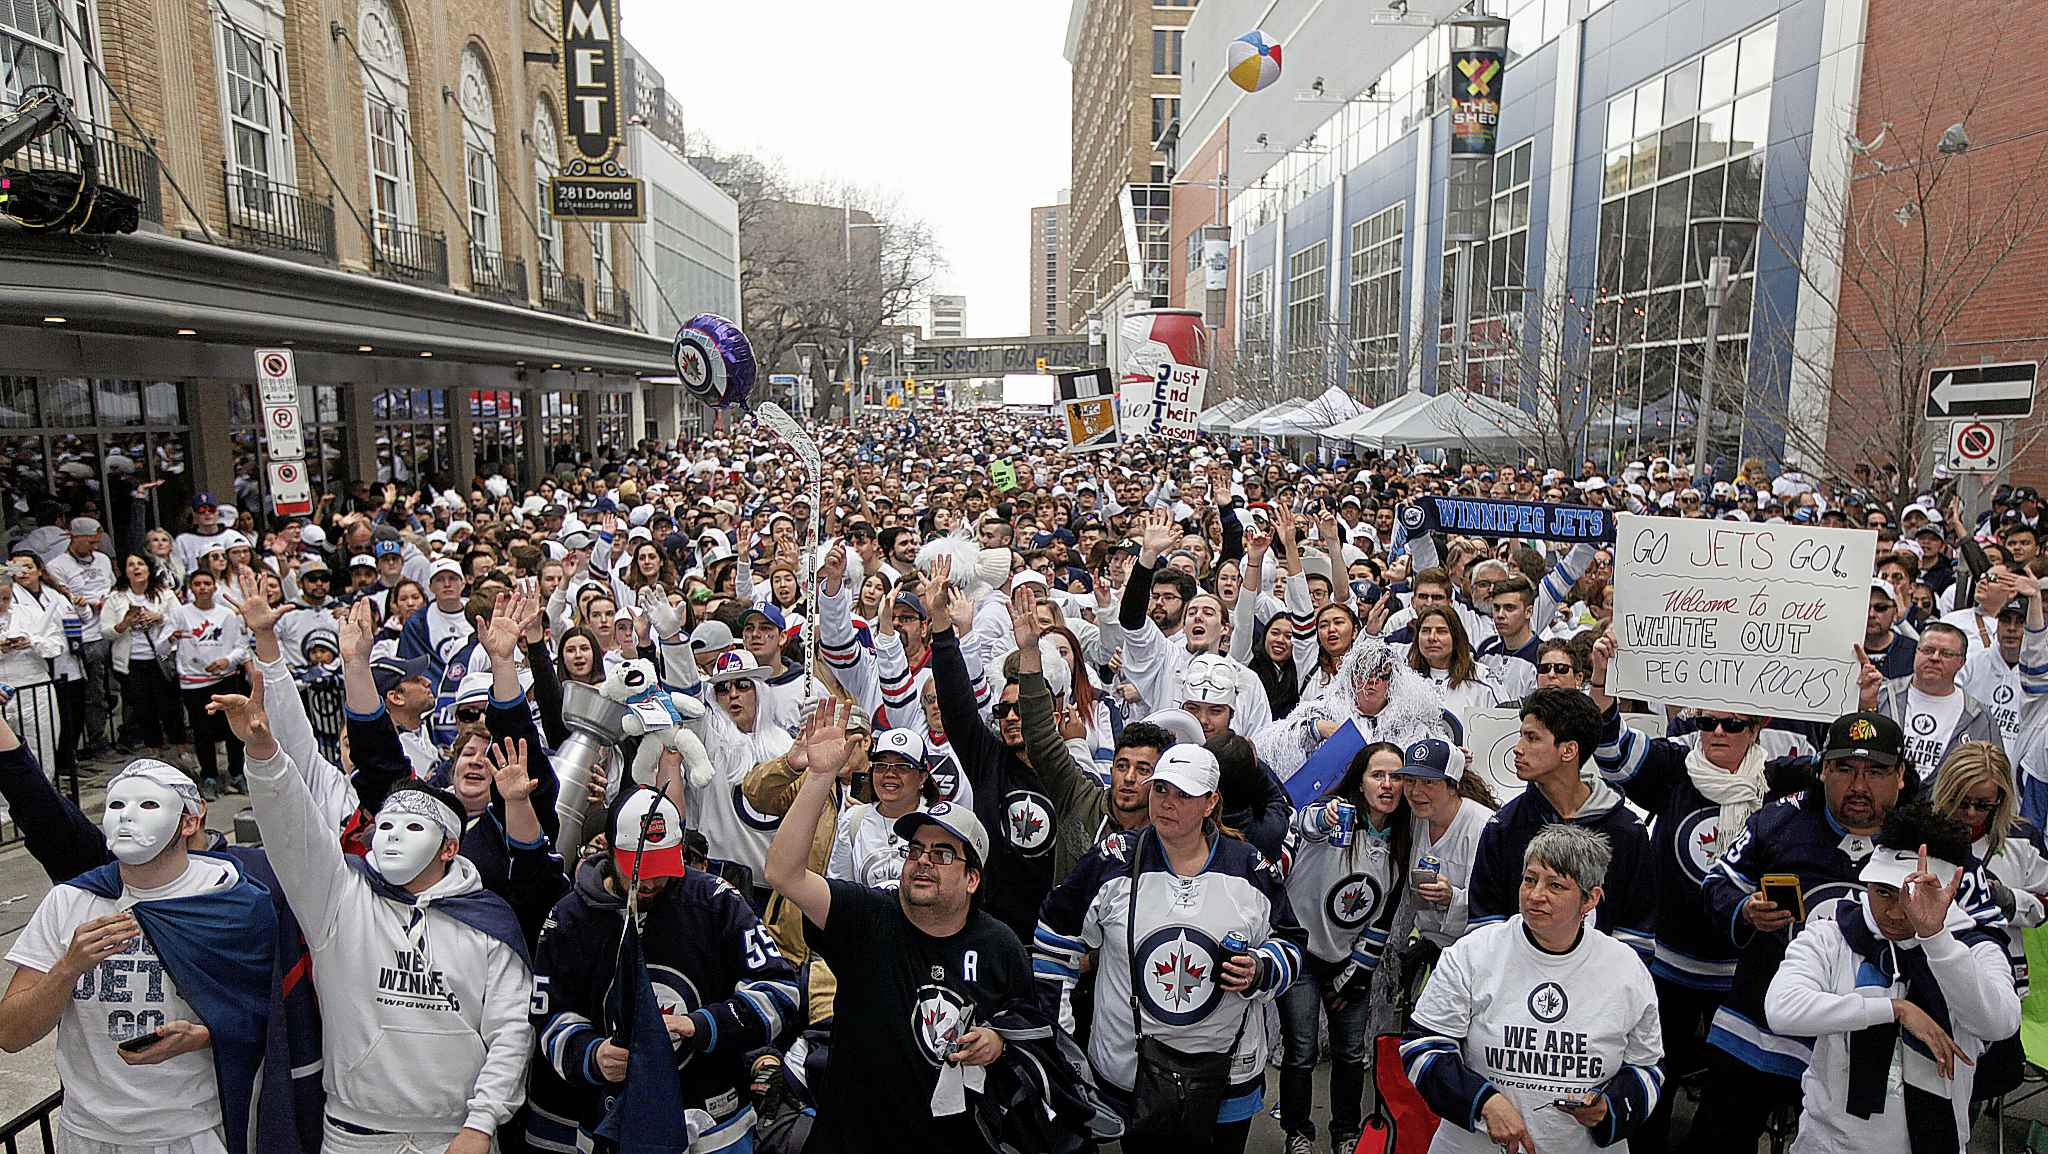 A perspective on Winnipeg and its Whiteout by The New York Times.